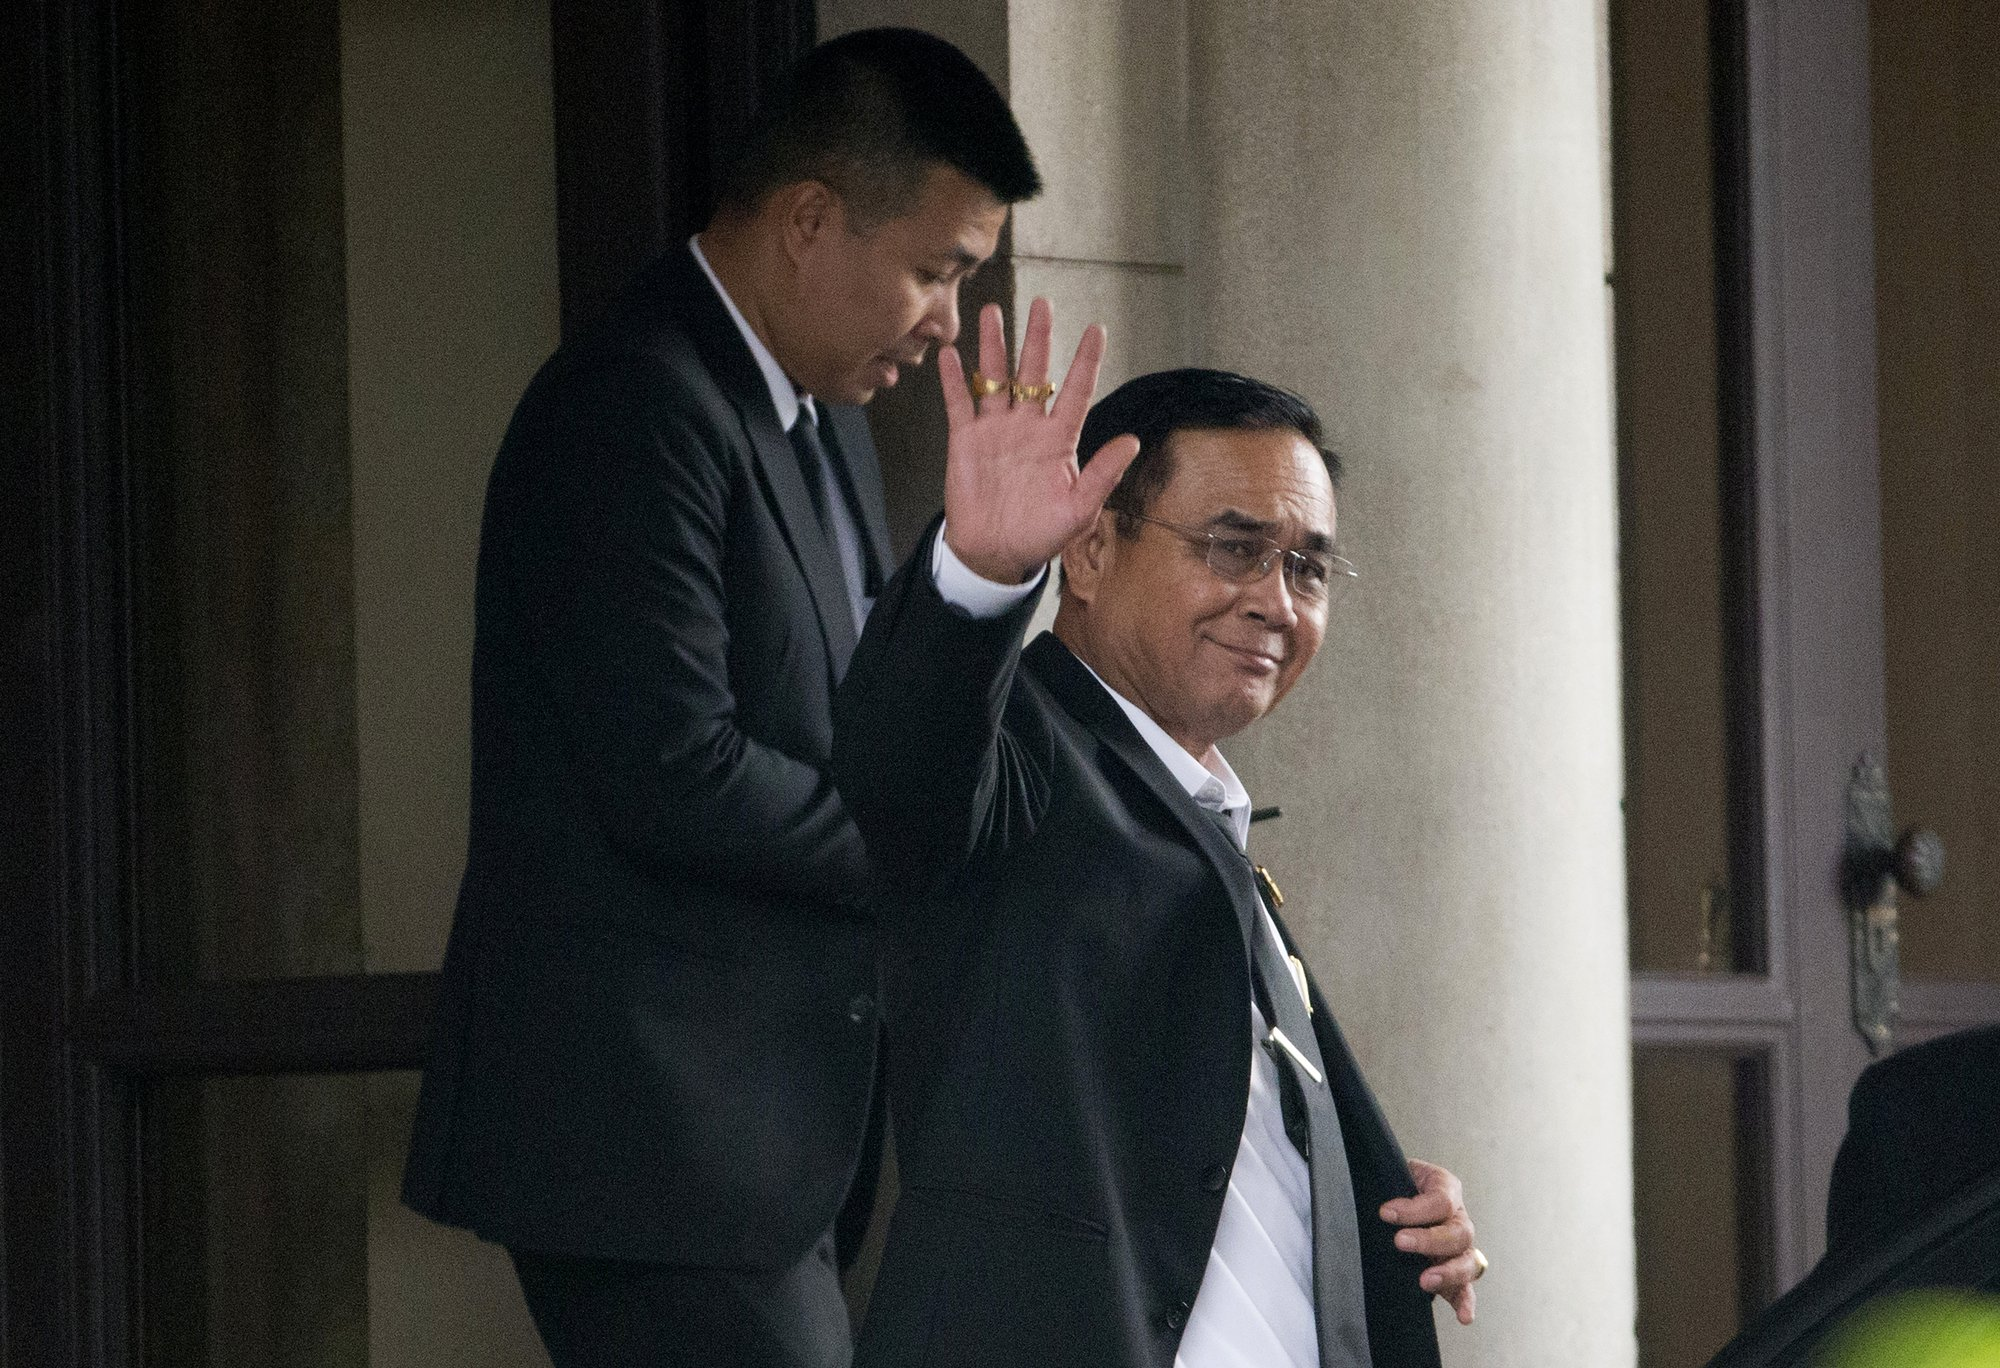 Prayut Chan-o-cha elected as new prime minister of Thailand